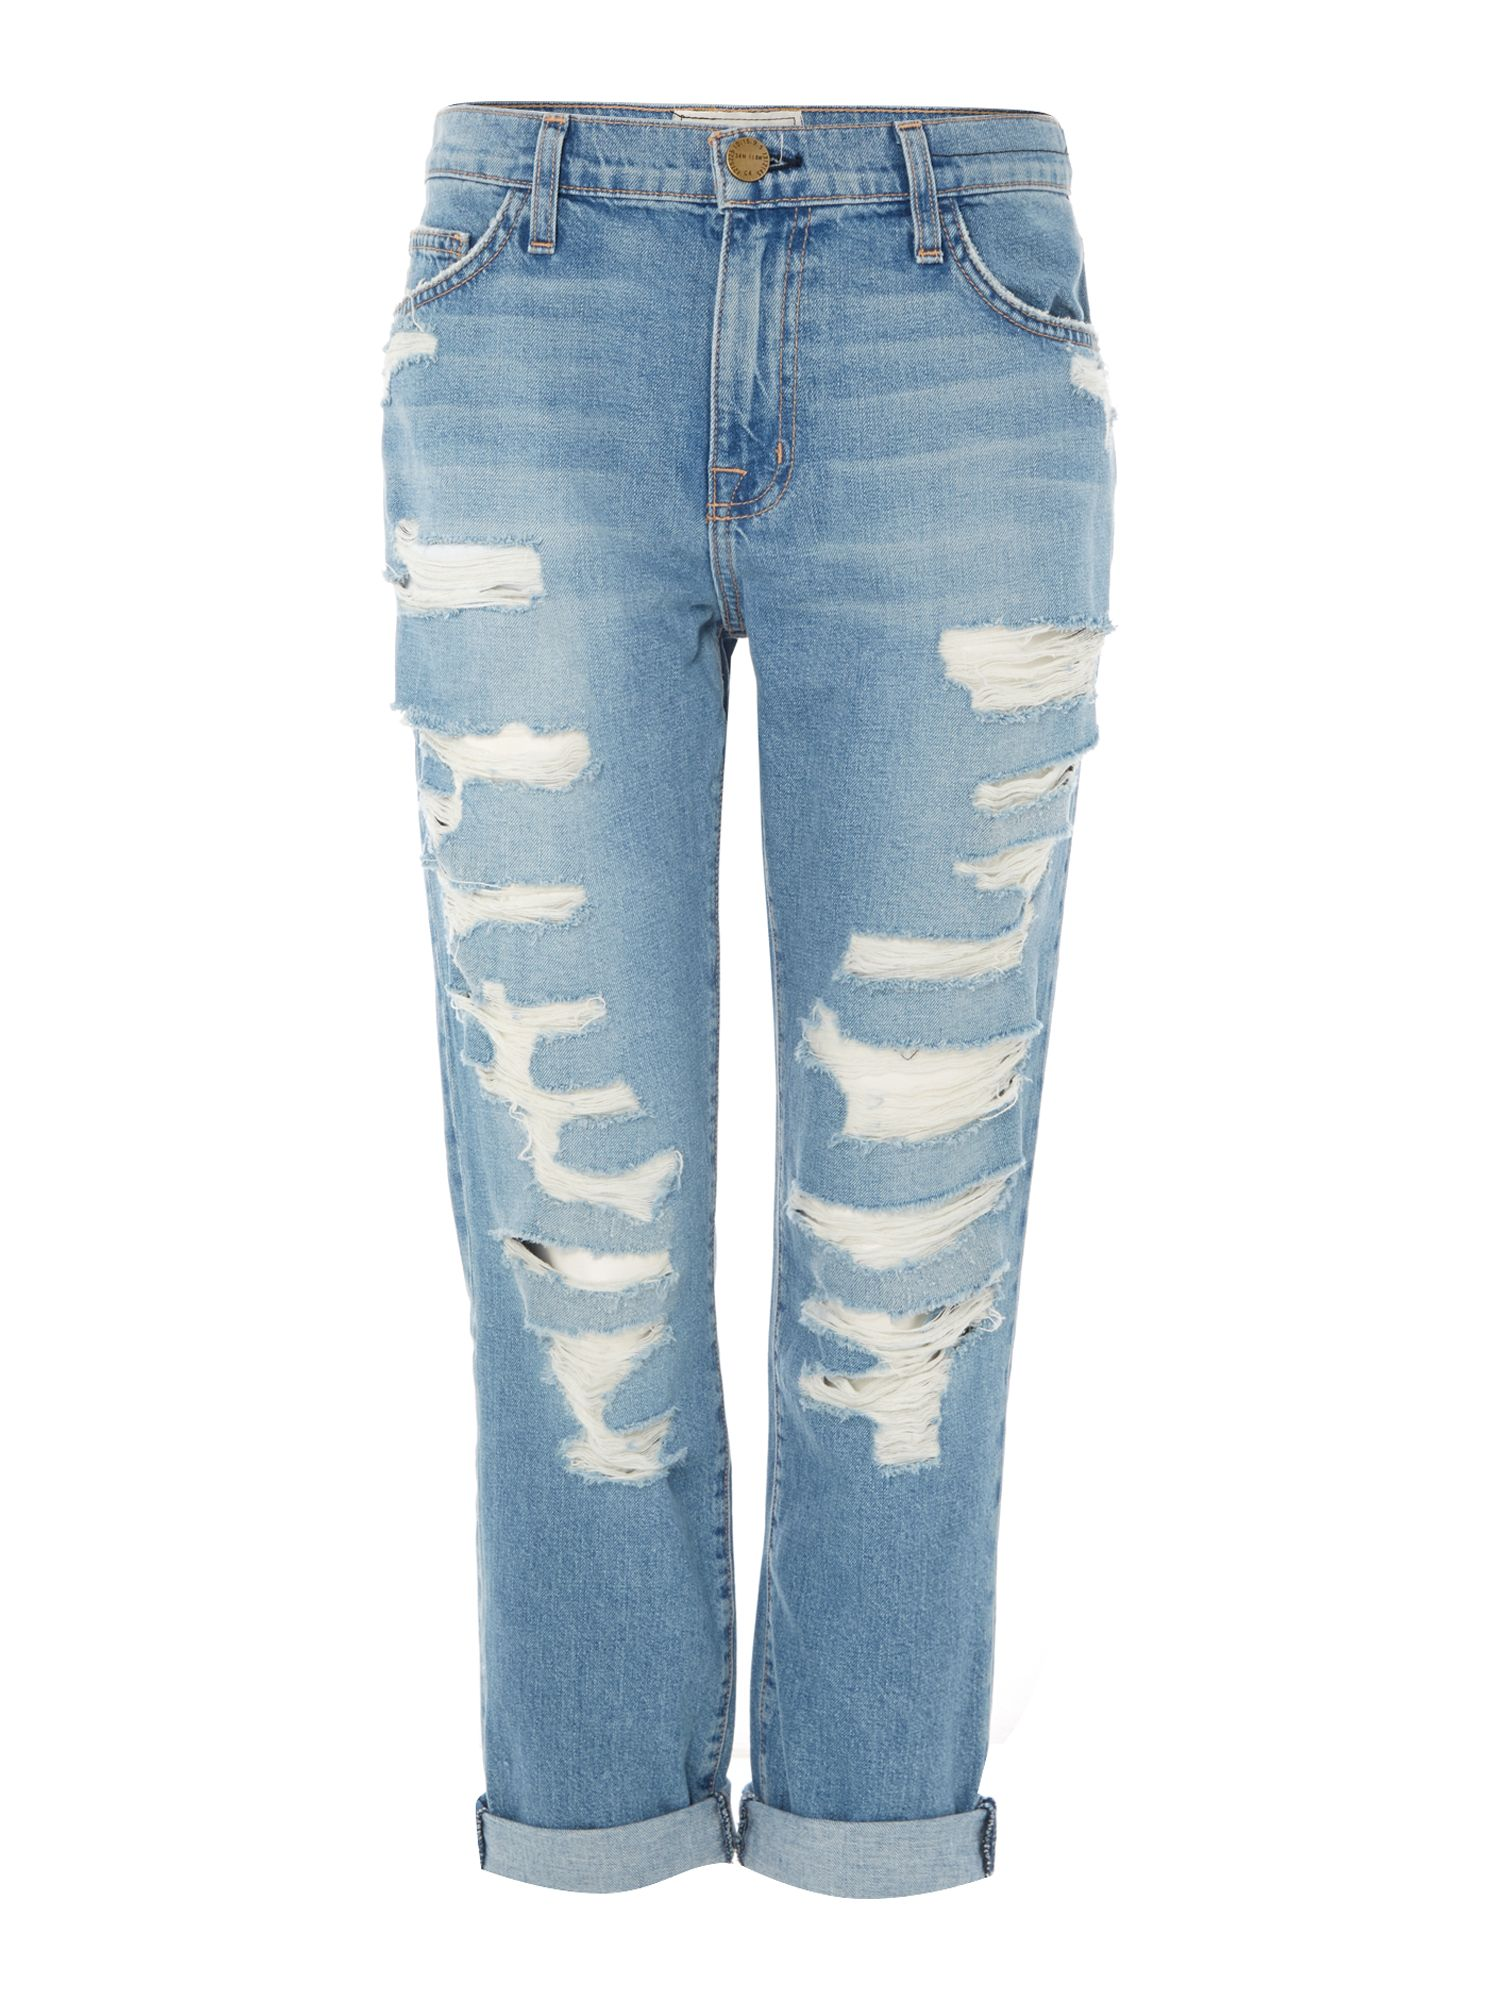 The Fling boyfriend jeans in tattered destroy